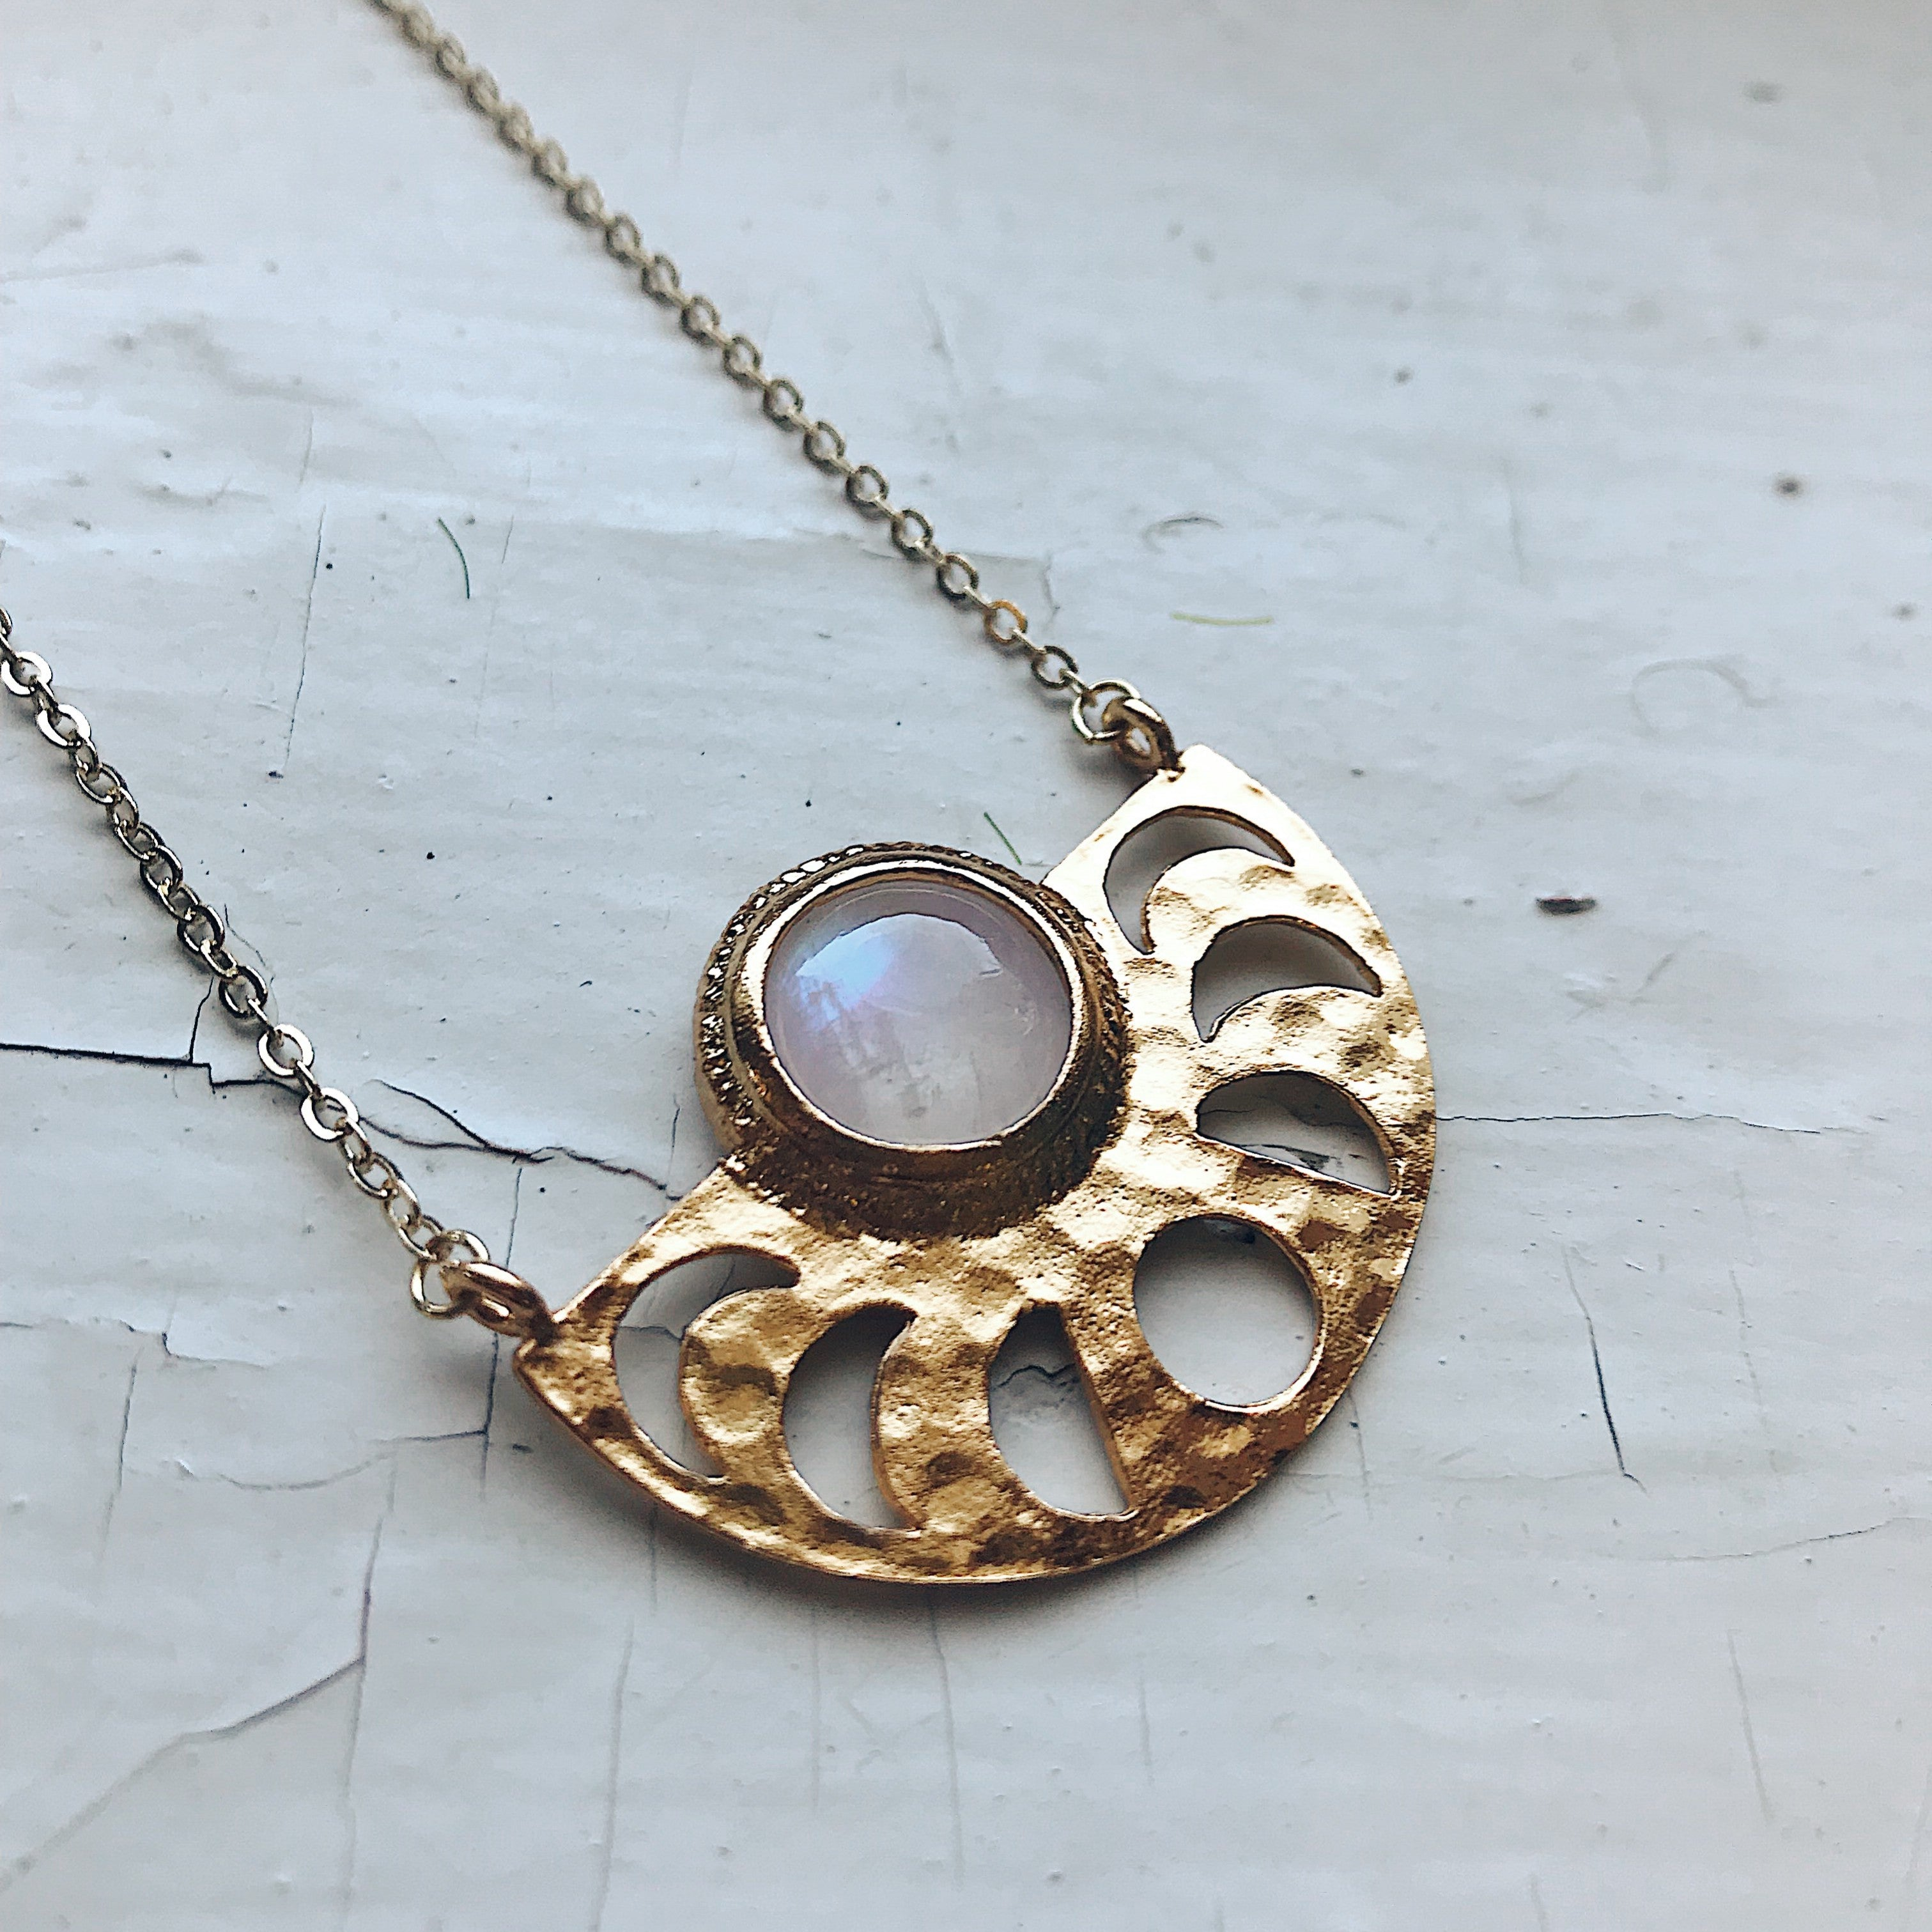 Rainbow moonstone moon phase necklace - Gold phases of the moon pendant necklace, handmade celestial jewelry, cosmos jewellery by Yugen Tribe